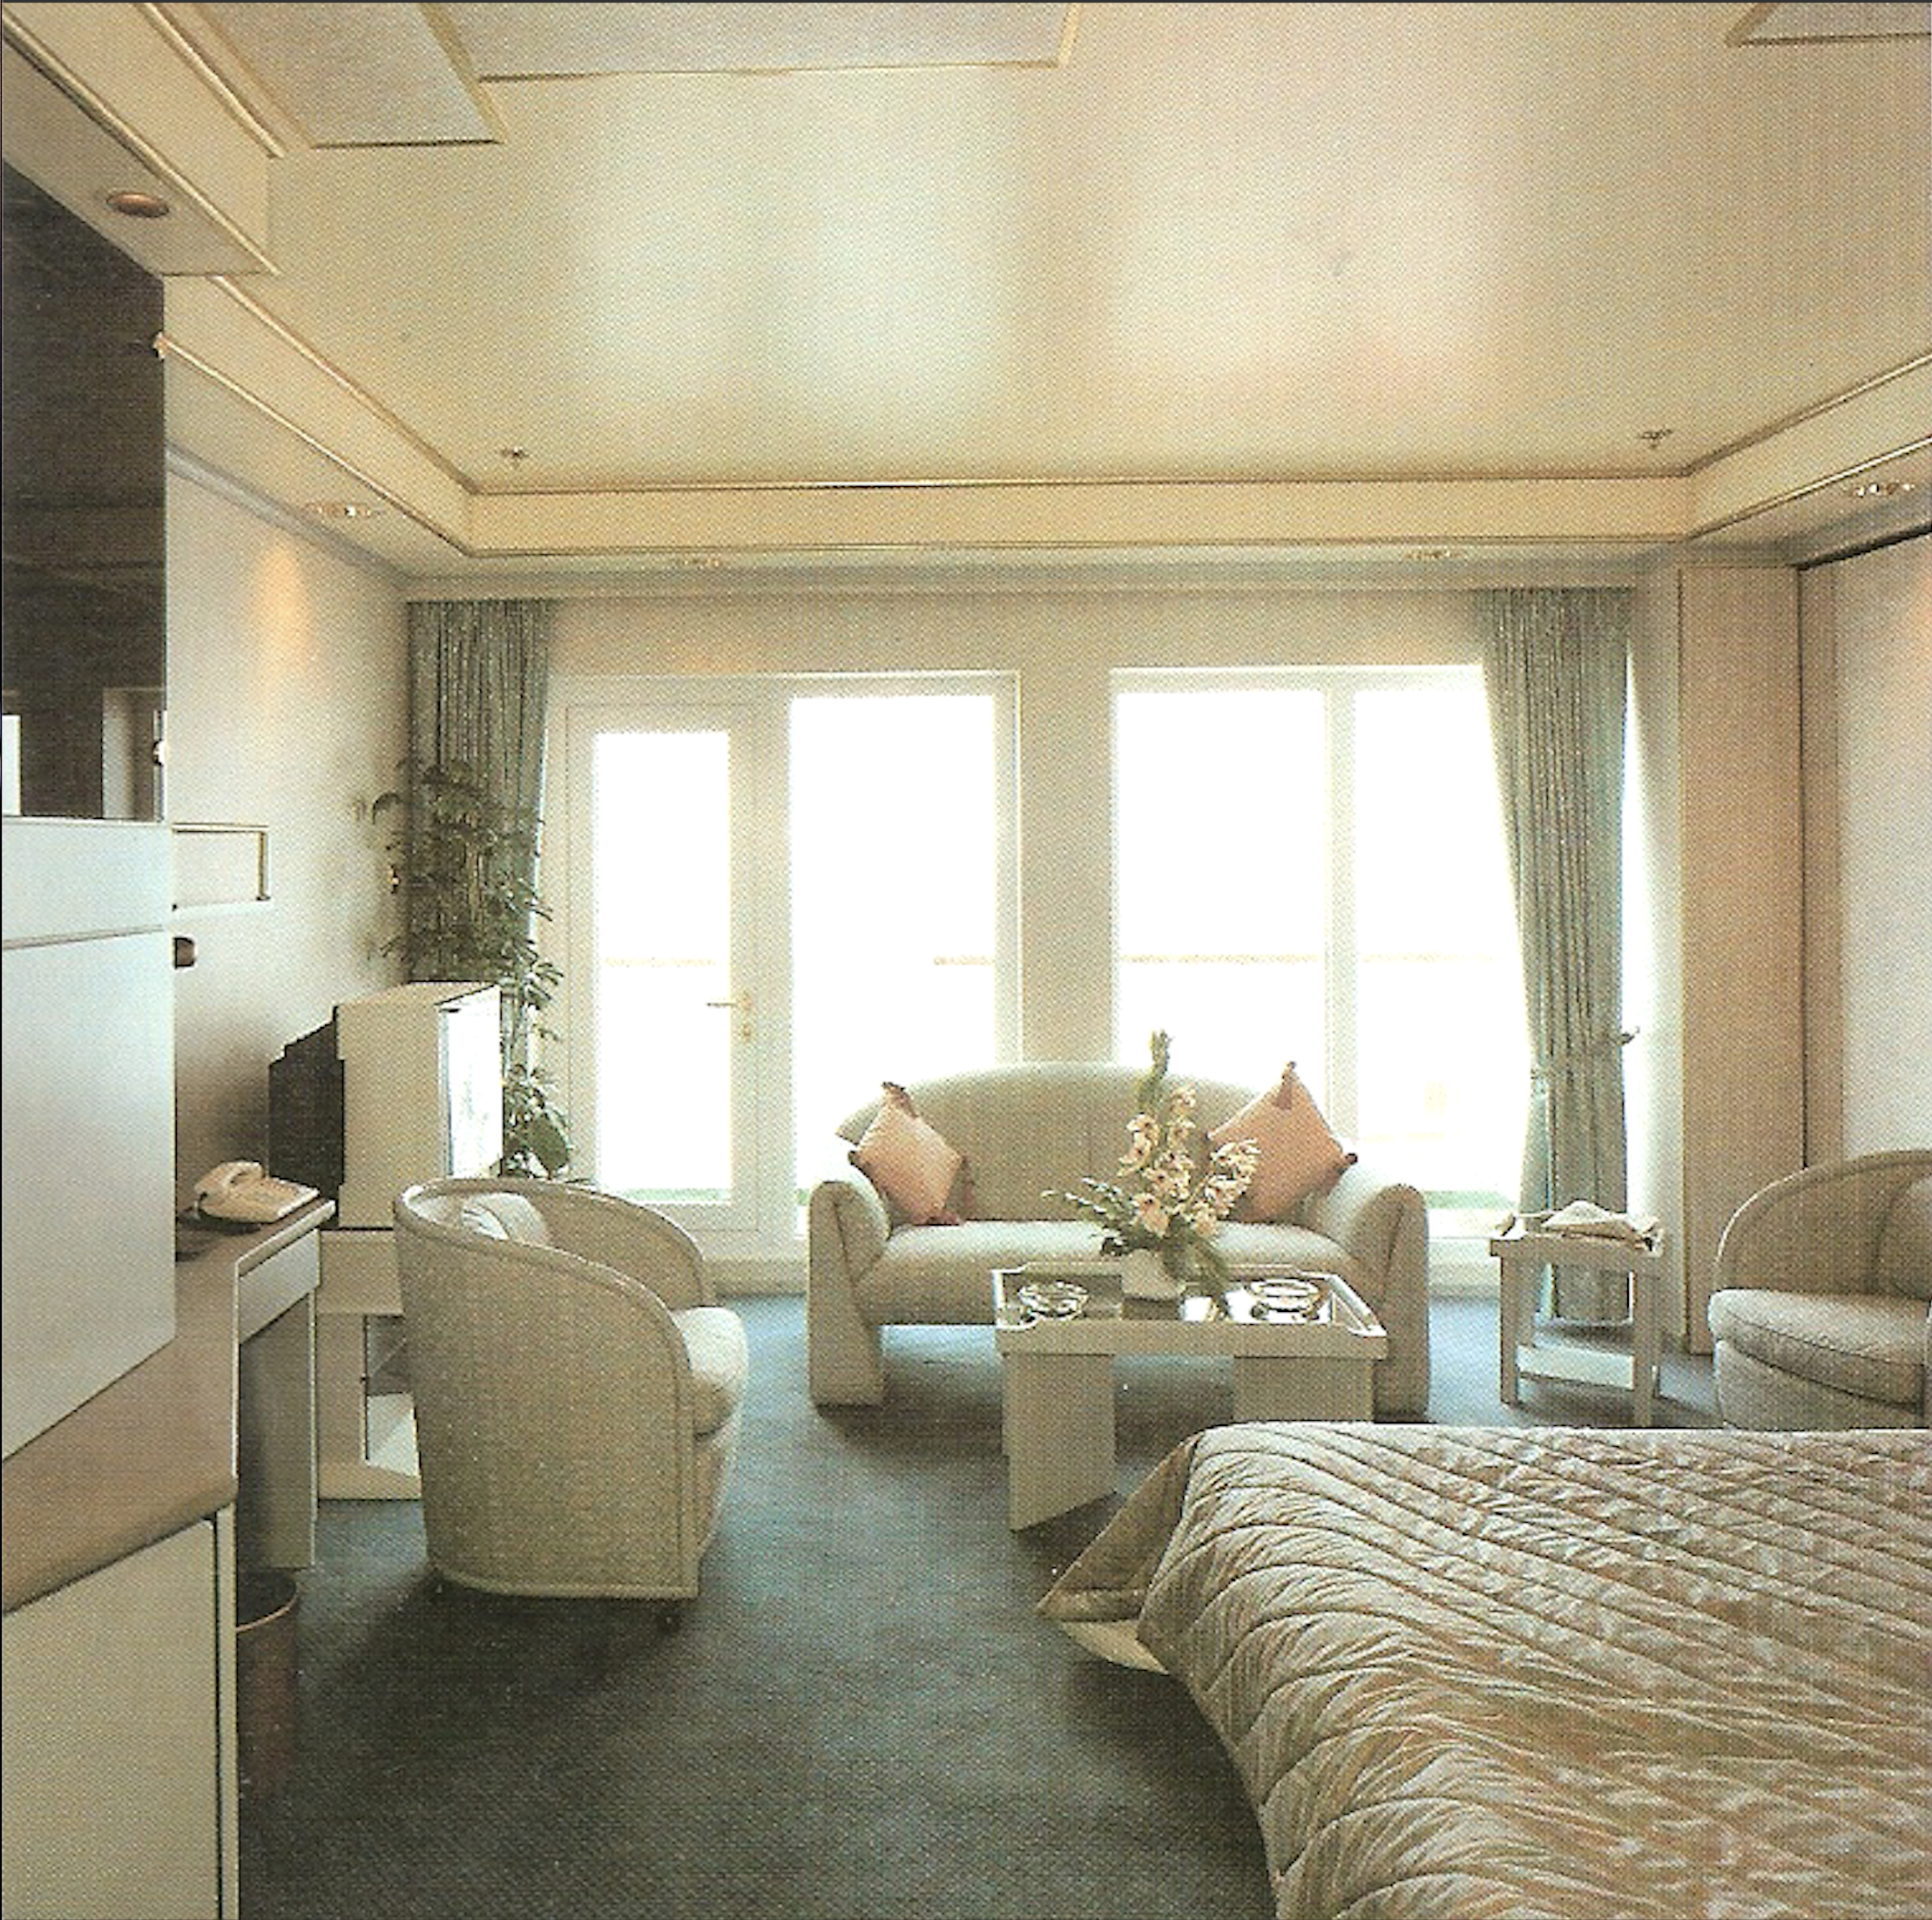 New luxury suites added to top deck on Queen Elizabeth II (Cunard Line)